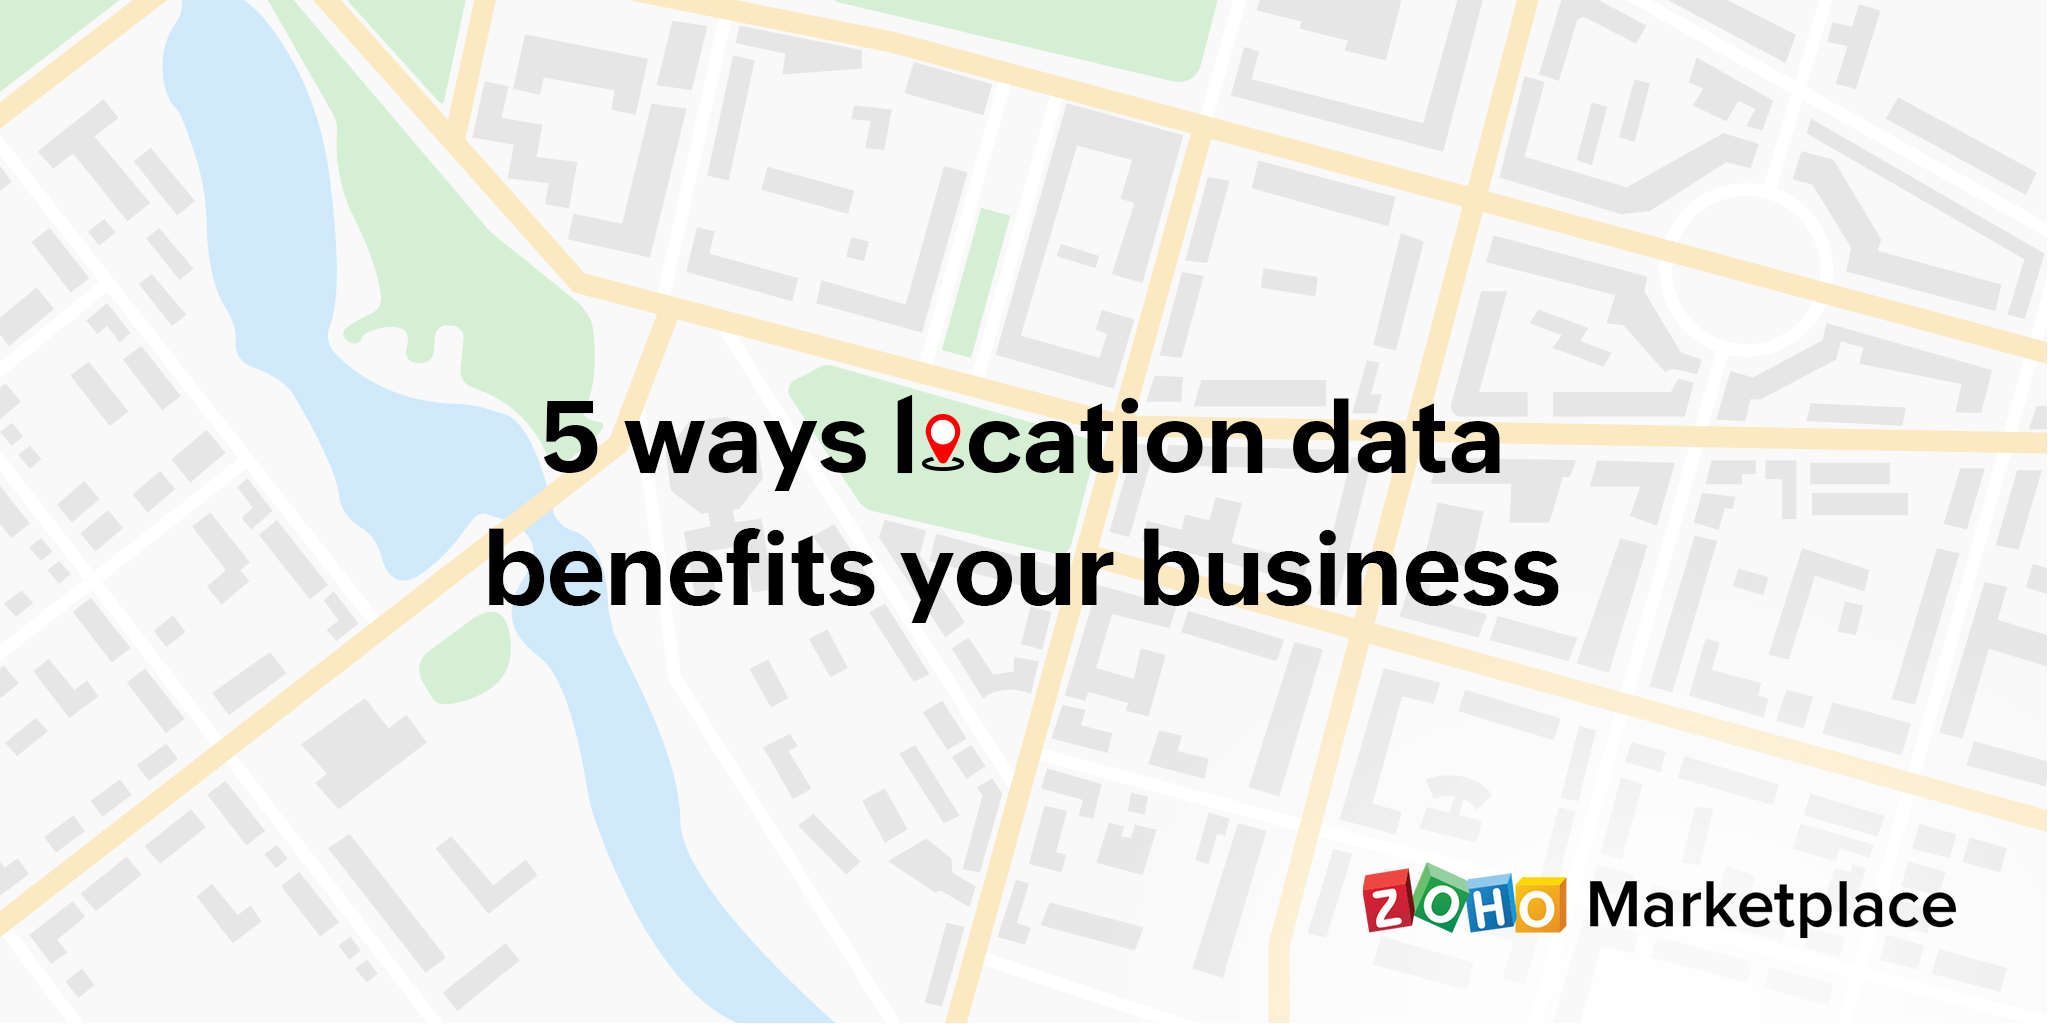 5 ways location data benefits your business